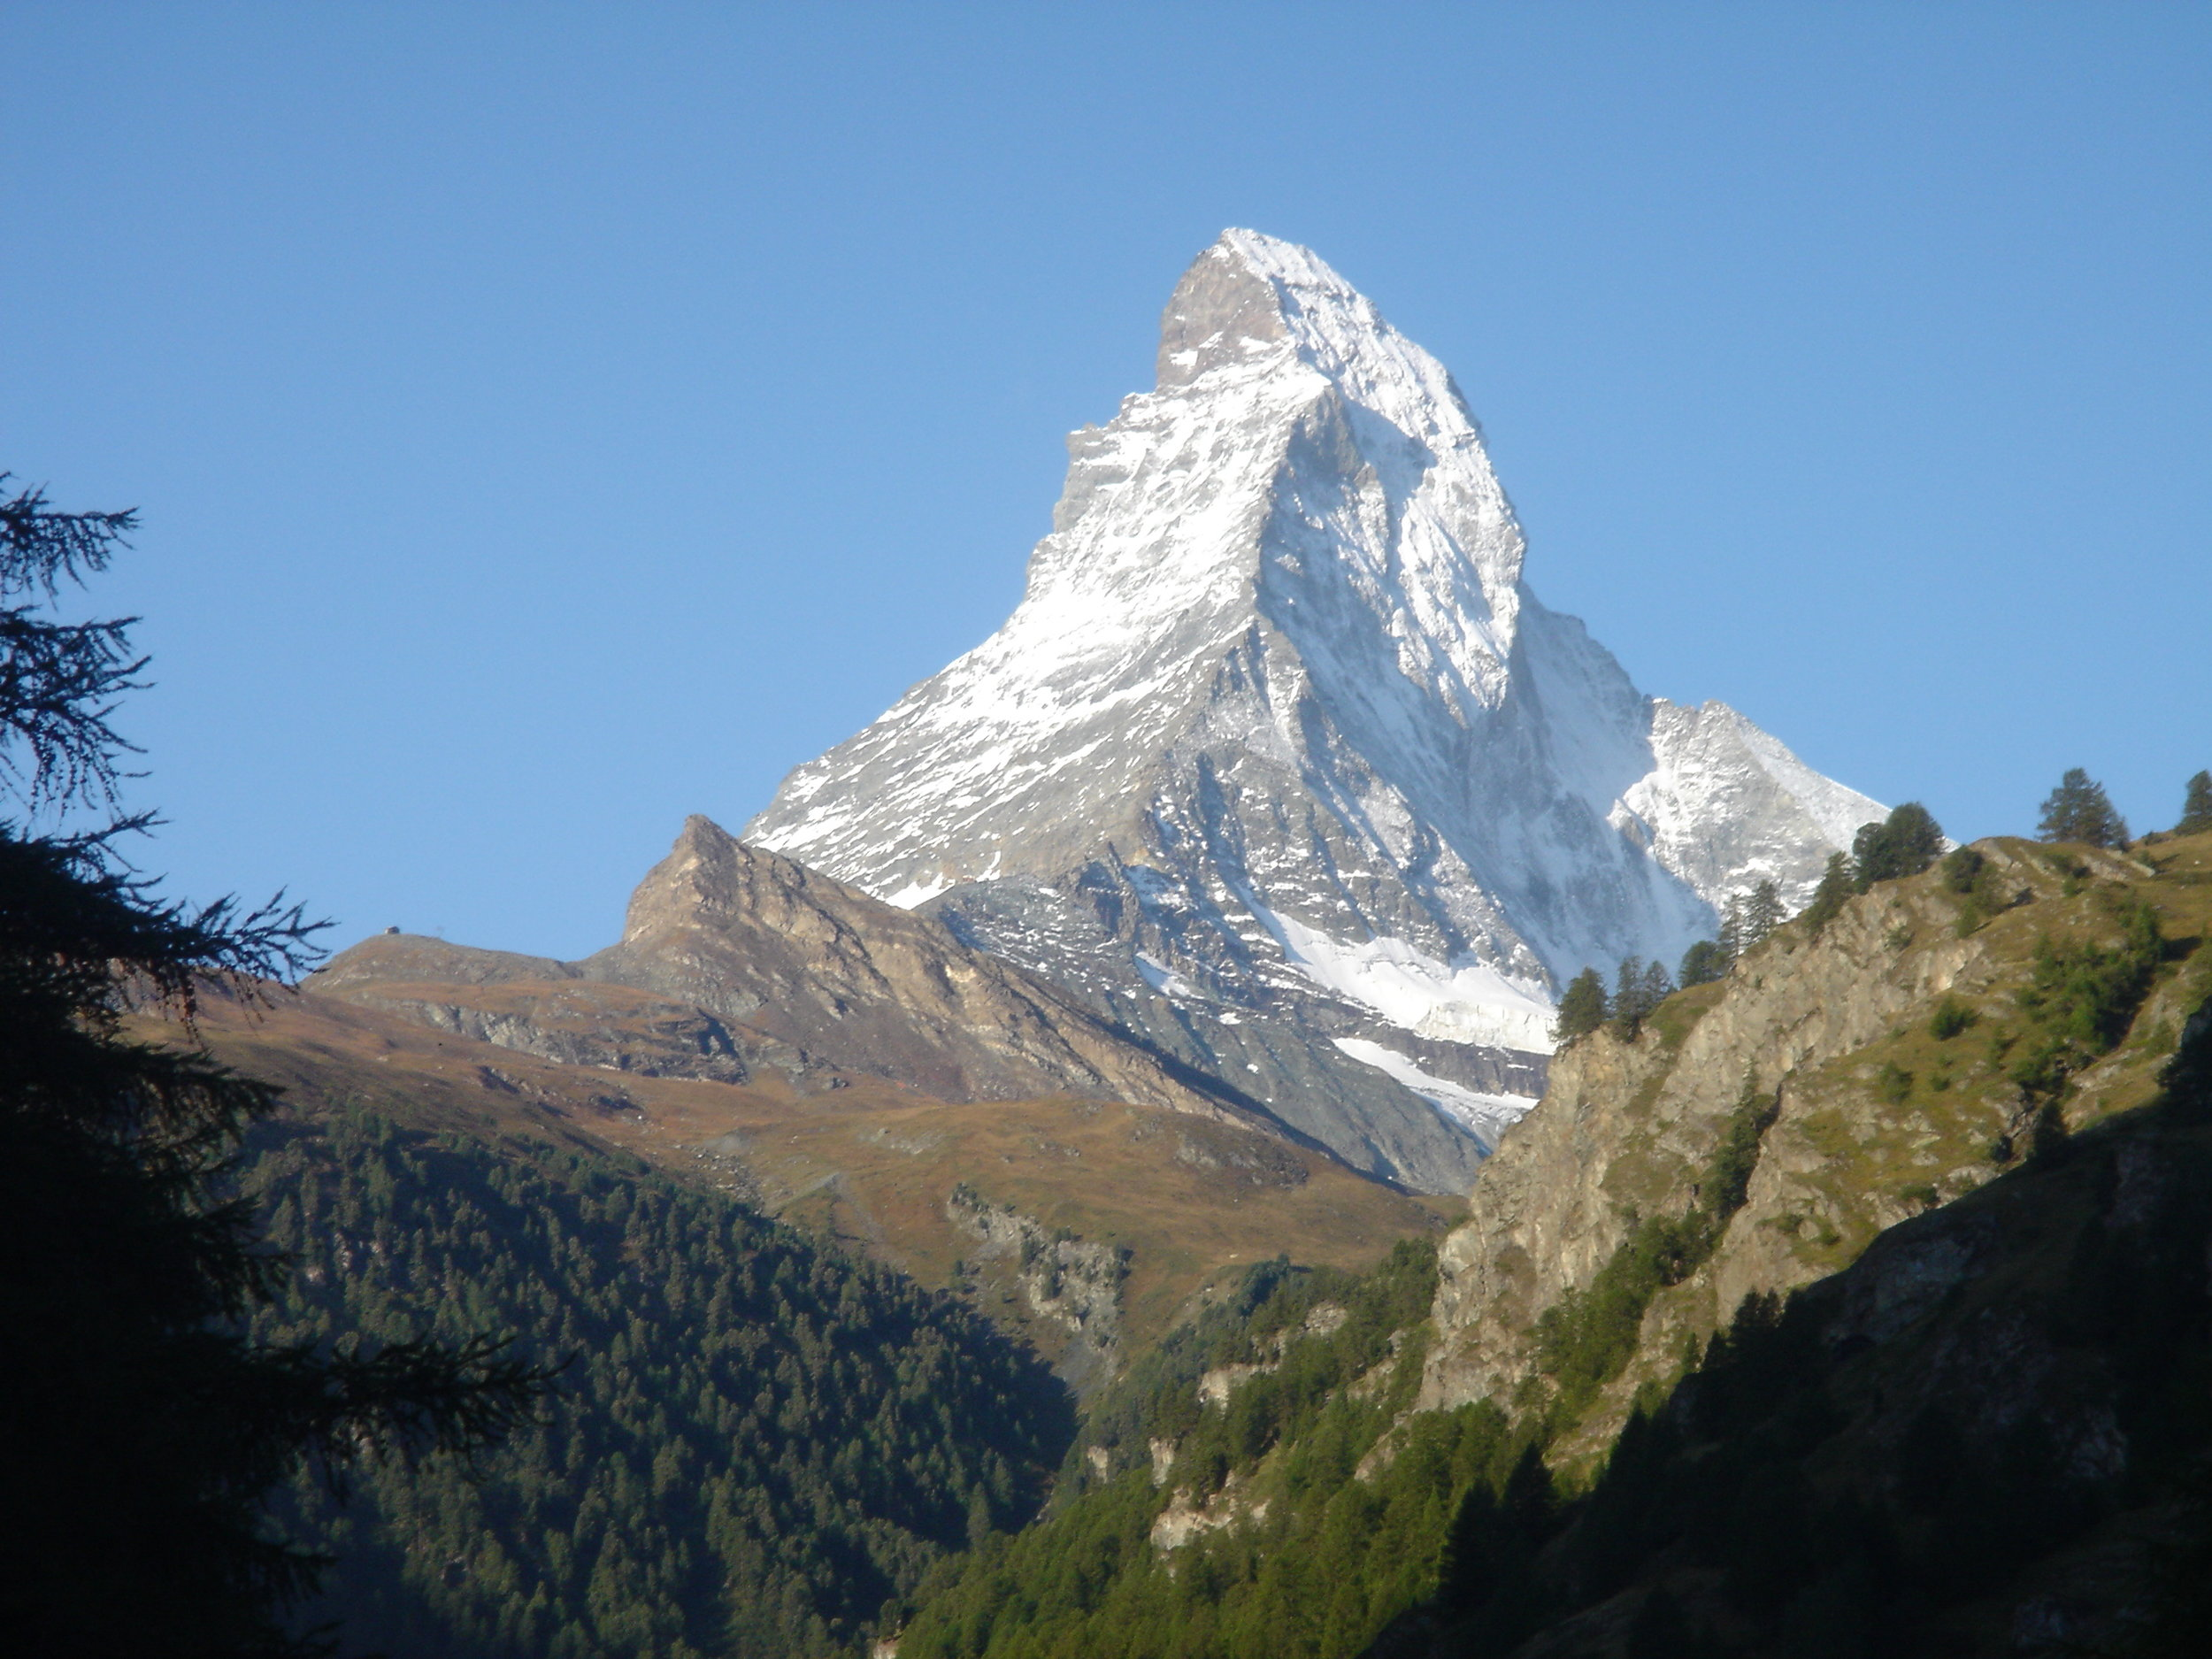 The Matterhorn rises above Zermatt, the eastern end of the Walker's Haute Route.